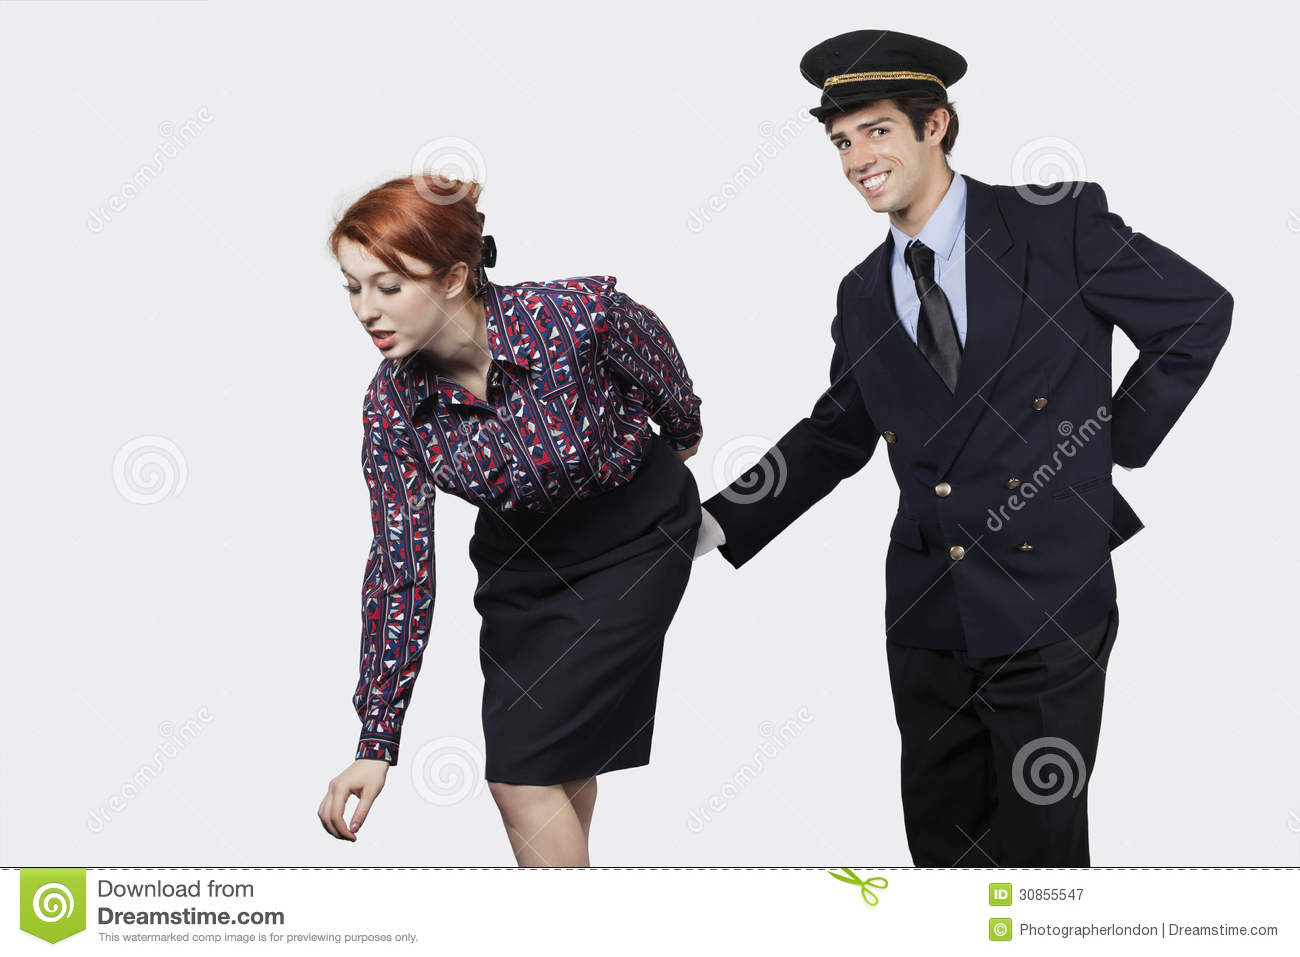 pilot flight attendant dating On crashpad411 you can list or find information about airline crash pads, crashpad reviews and best crash pad housing for flight attendants, pilots, flight crew or airline personnel near airport.